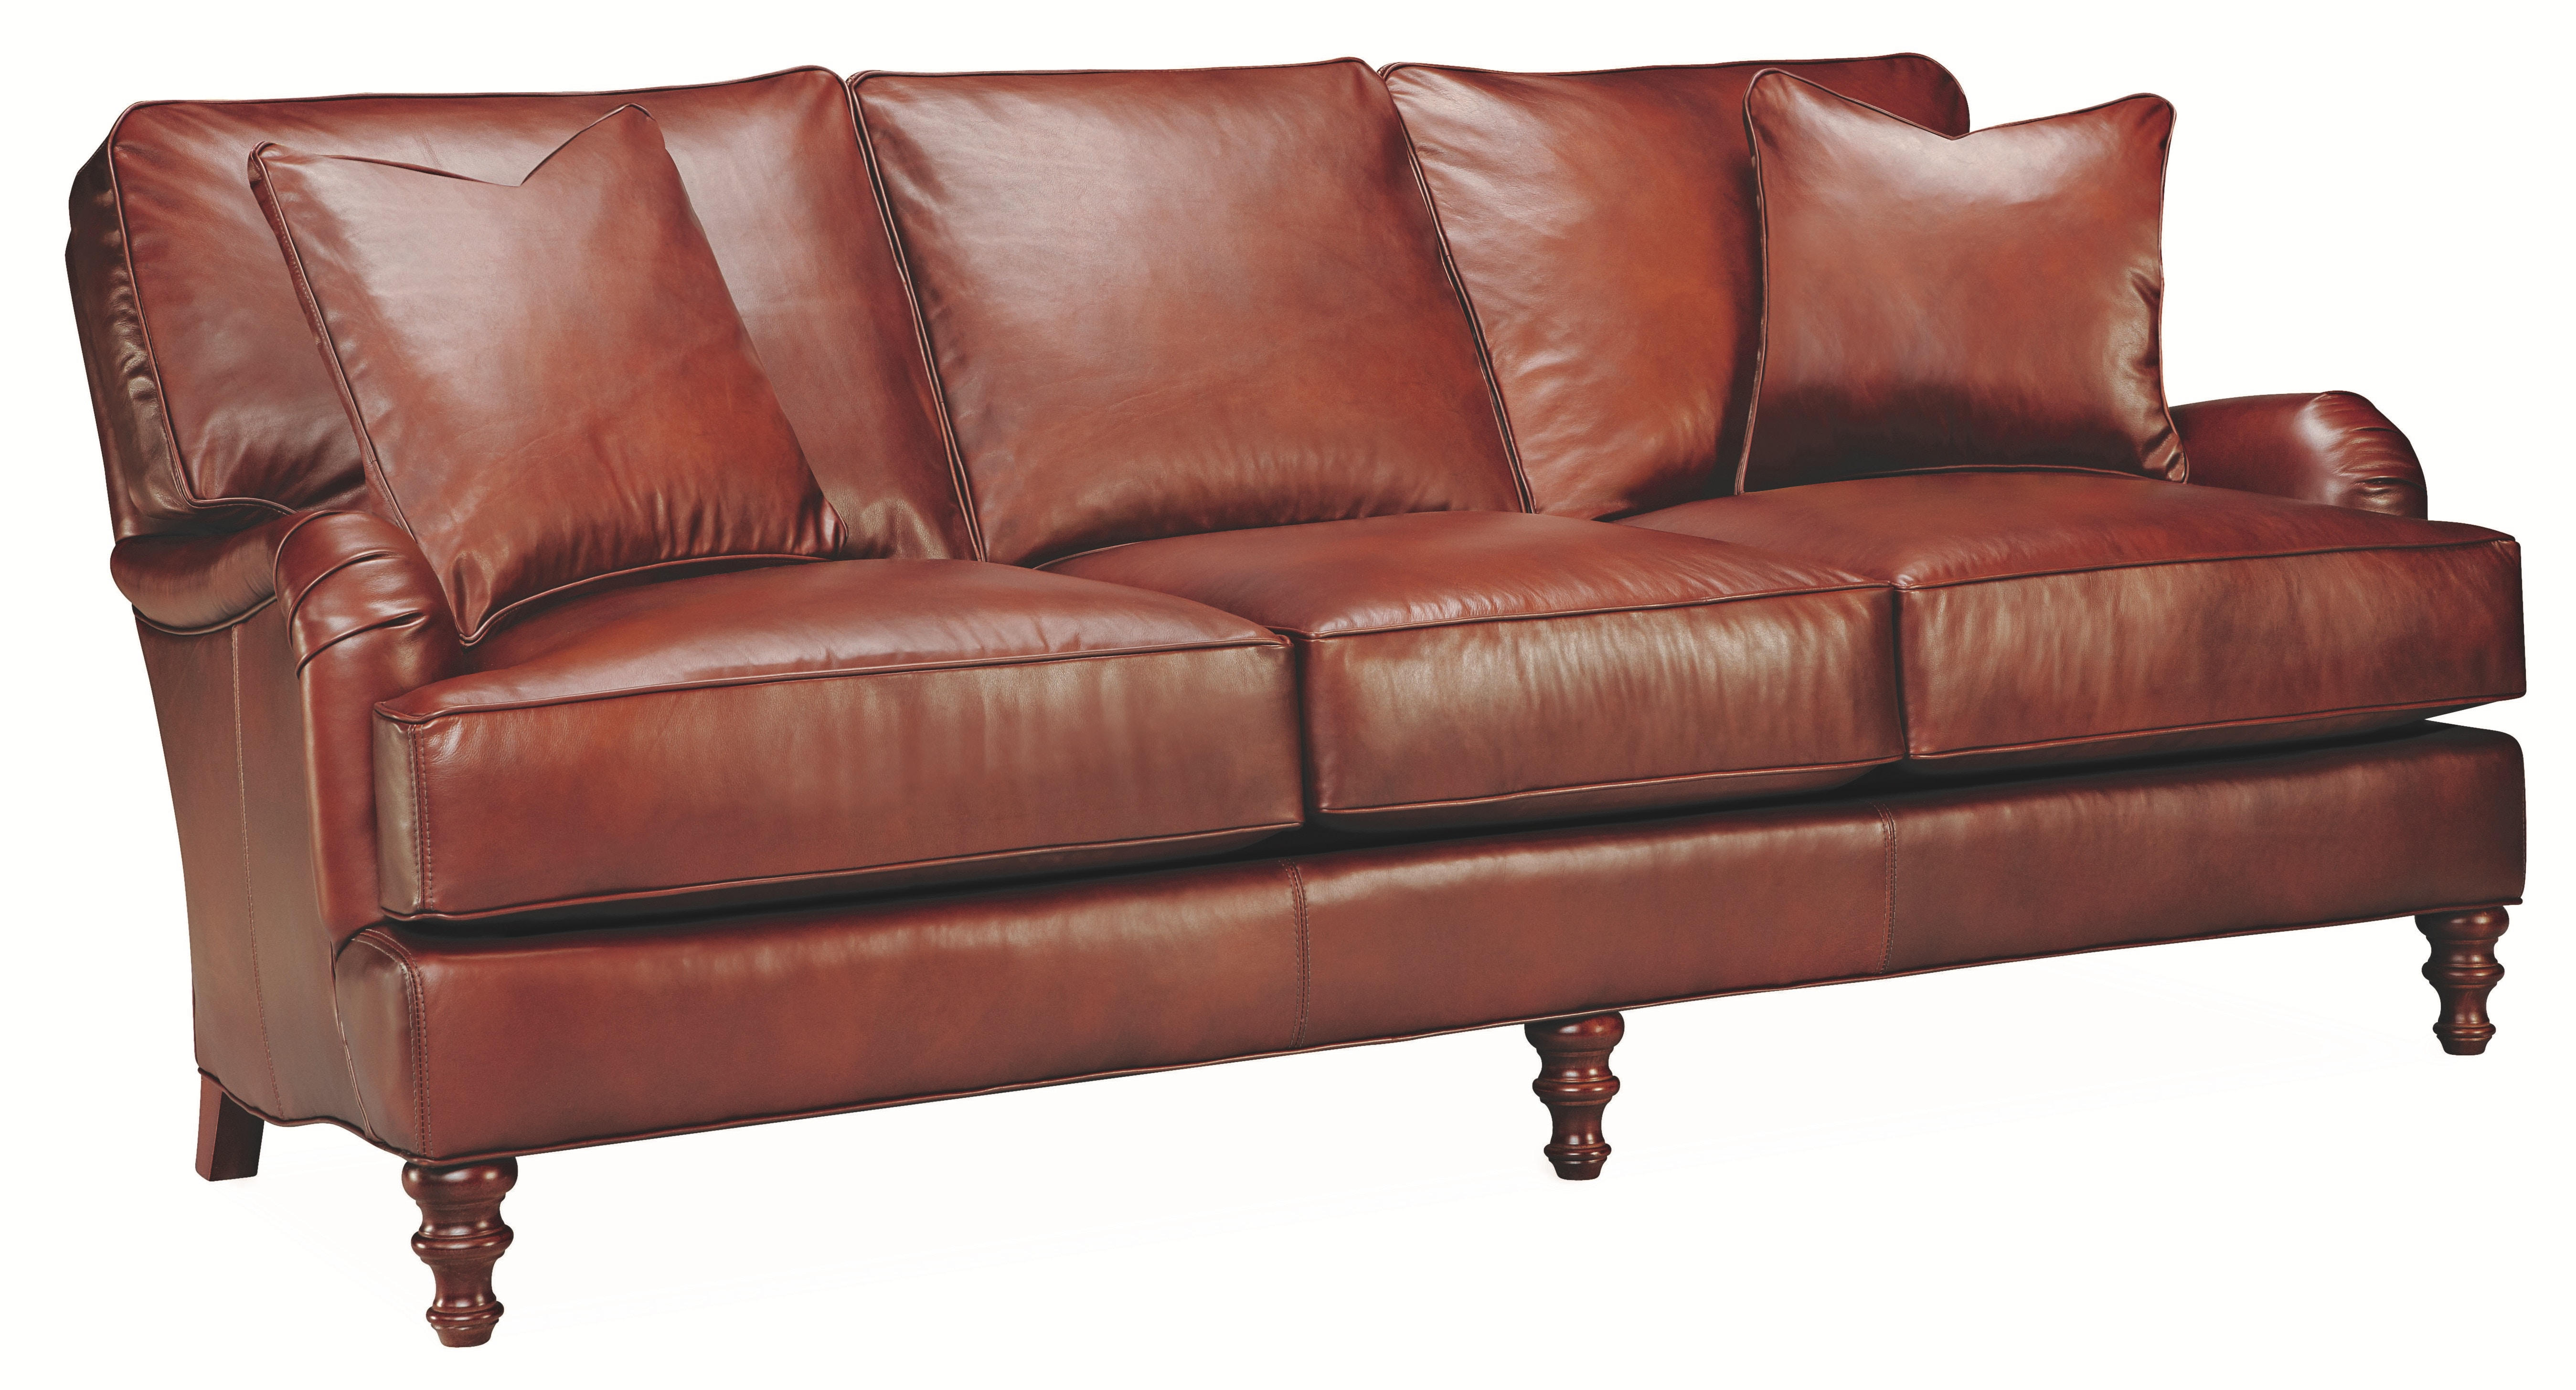 lee industries leather sofa how to clean a with steam living room l2452 03 exotic